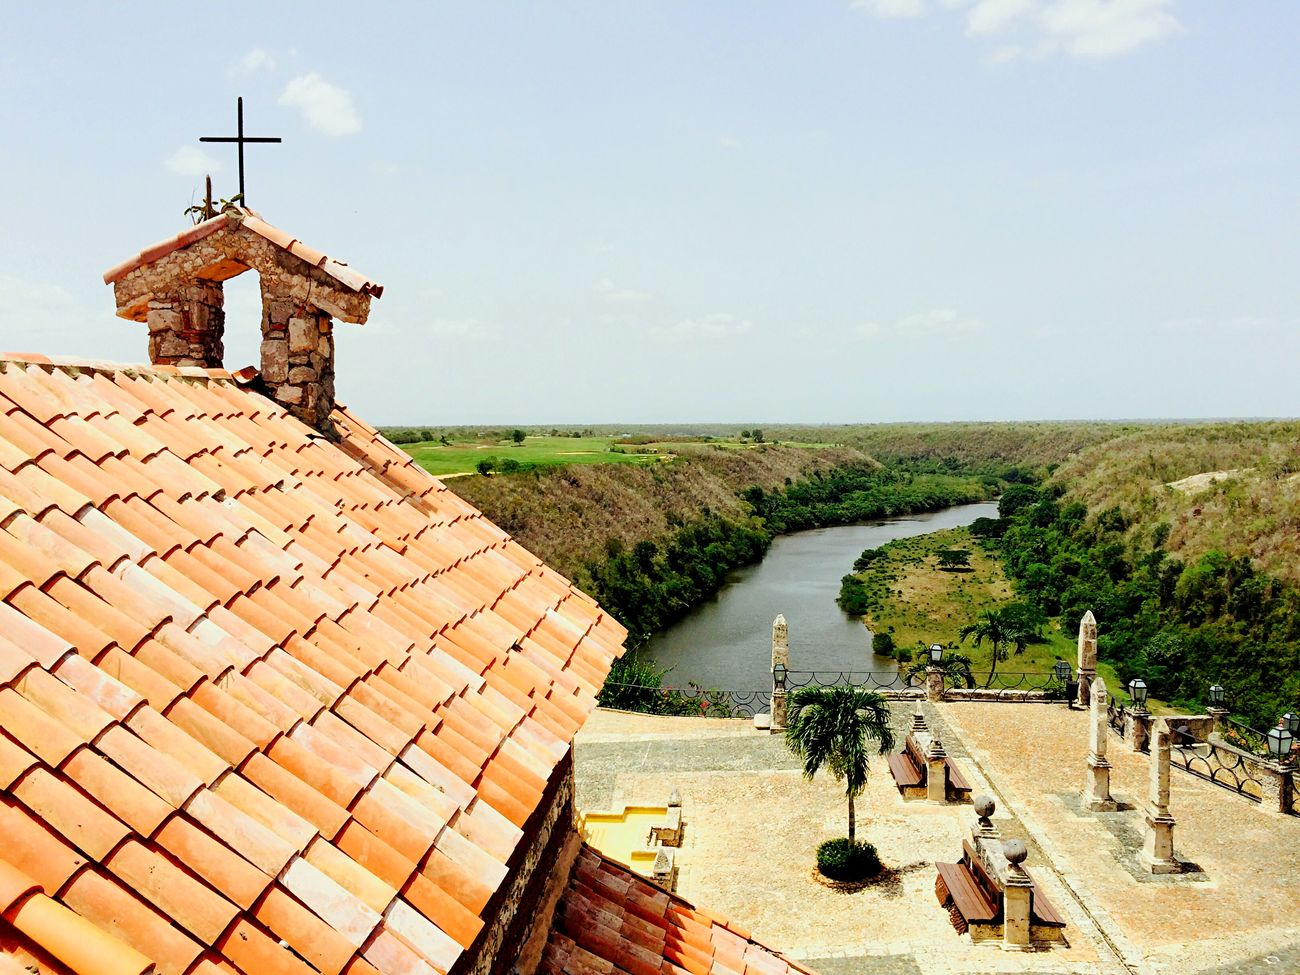 Dominican Republic Altosdechavon Aroundtheworld